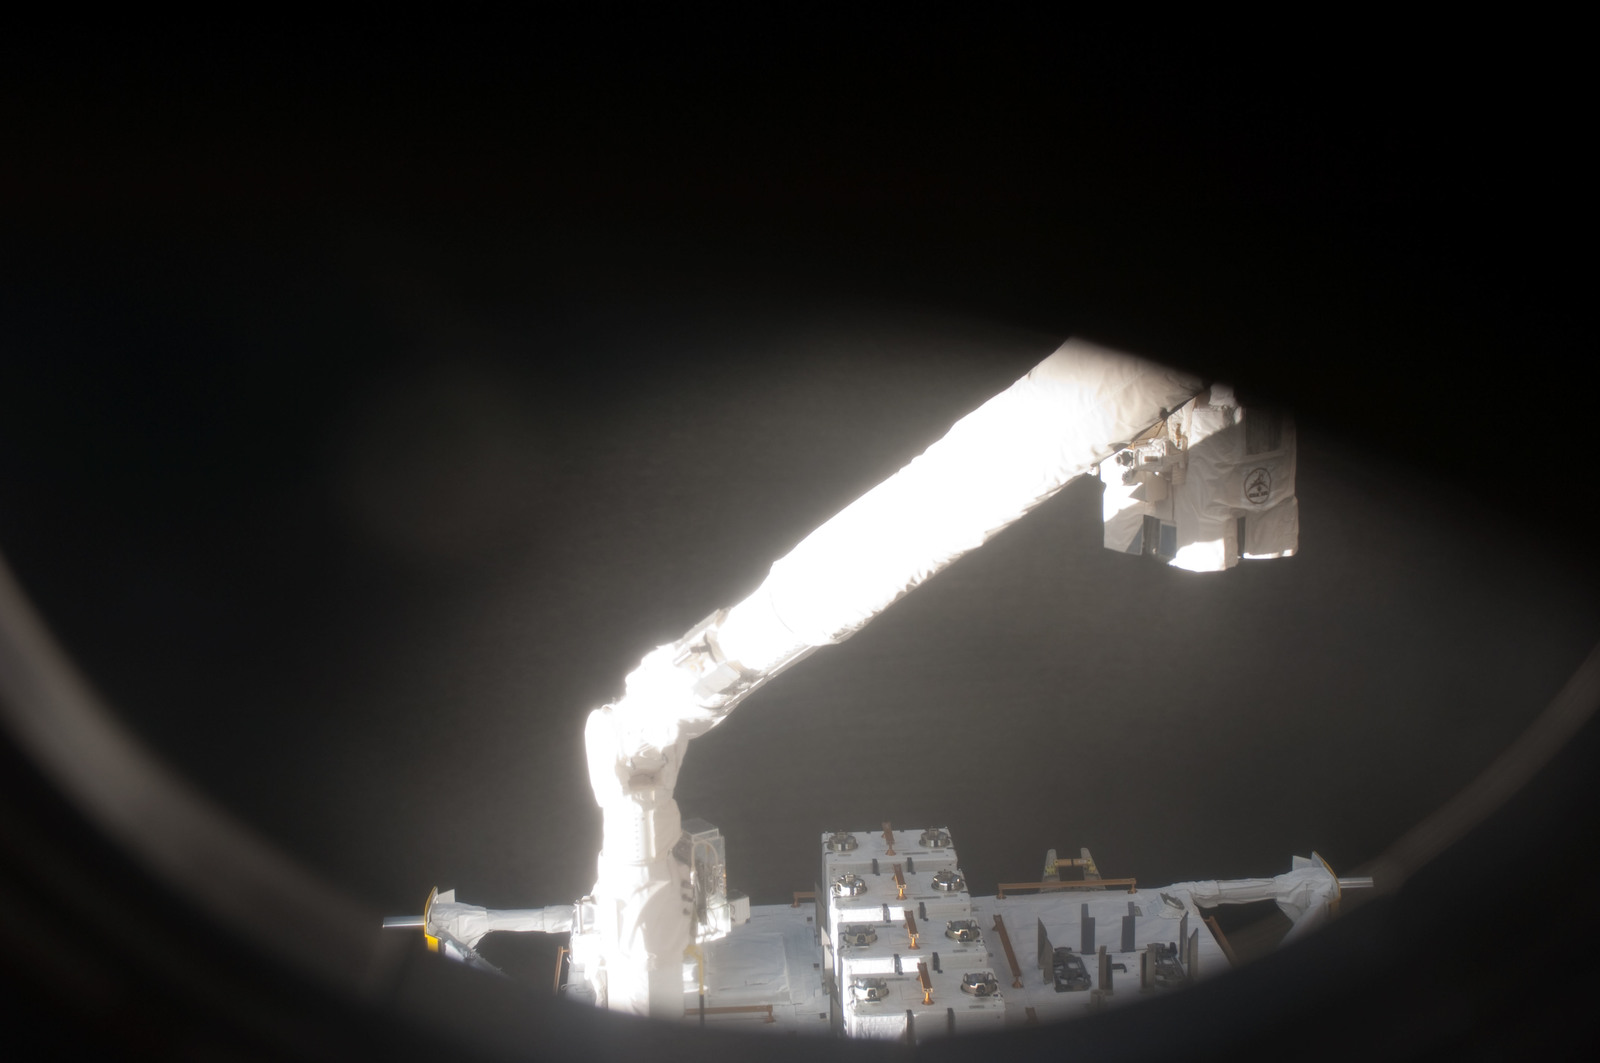 S127E006860 - STS-127 - SSRMS moves JEF during EVA-1 on STS-127 / Expedition 20 Joint Operations